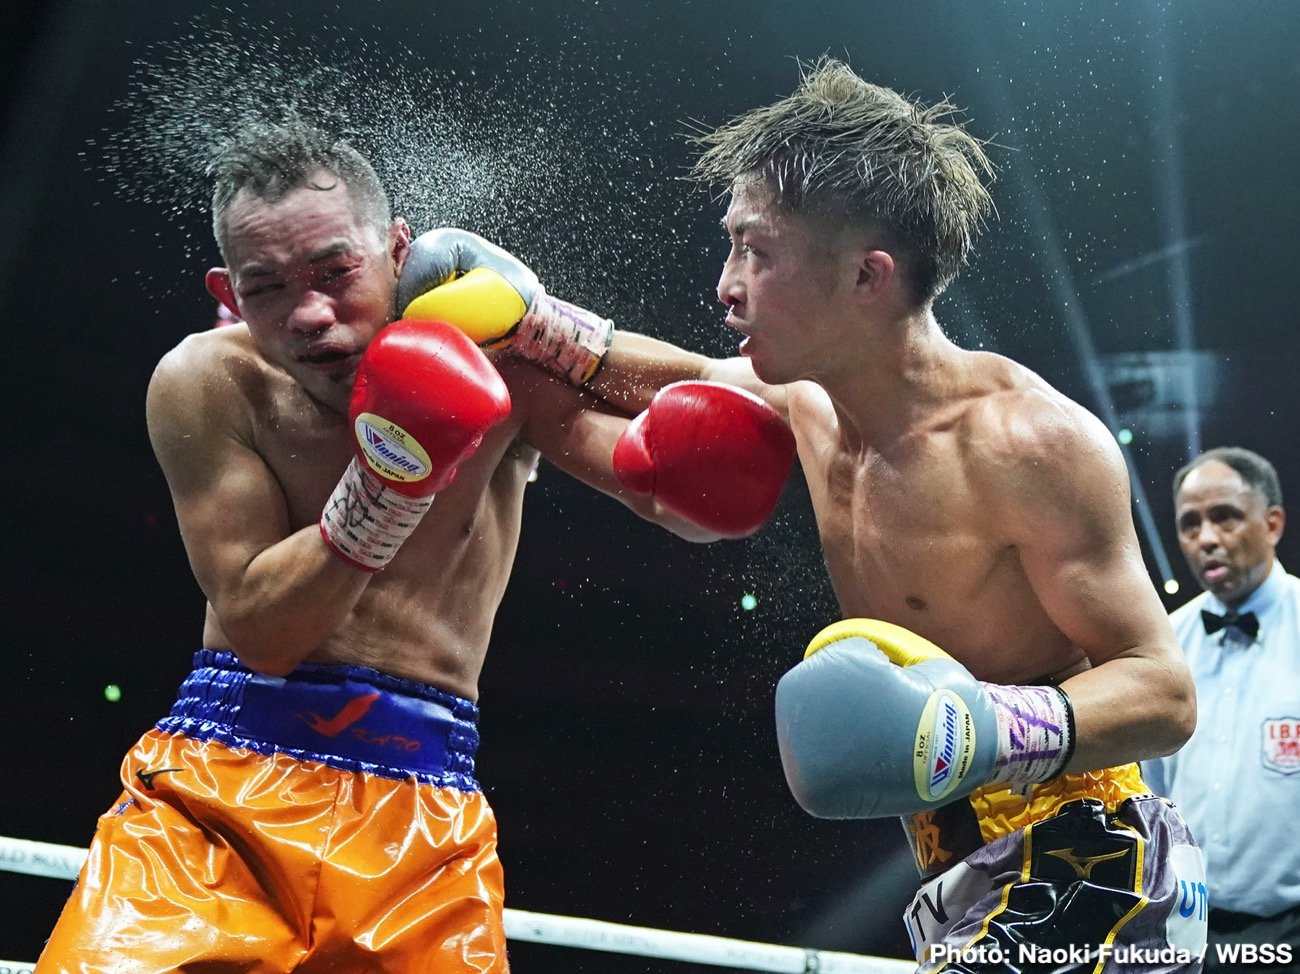 Naoya Inoue, Nonito Donaire, Nordine Oubaali, Takuma Inoue - WBA bantamweight champion Nonito Donaire (40-5, 26 KOs) gave IBF/WBA champ Naoya Inoue (19-0, 16 KOs) the fight of his life in losing to him by an exciting 12 round unanimous decision in the WBSS final on Thursday at the Super Arena in Saitama, Japan. Inoue was cut over his right eye in the 2nd, and suffered a bloody nose in the third.